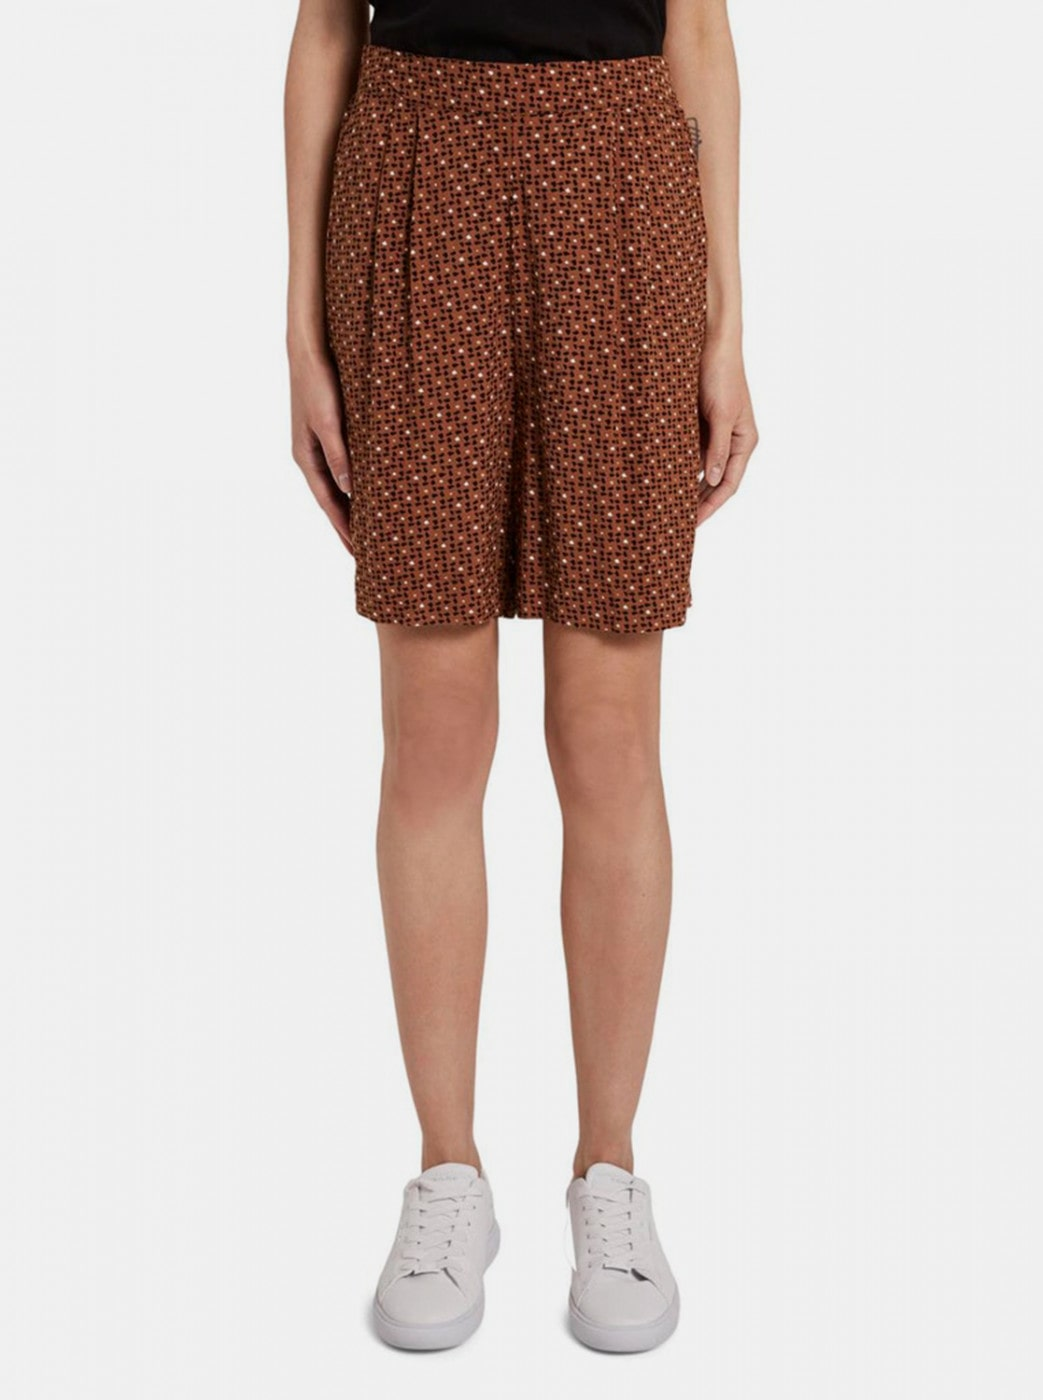 Tom Tailor Brown Women's Patterned Shorts